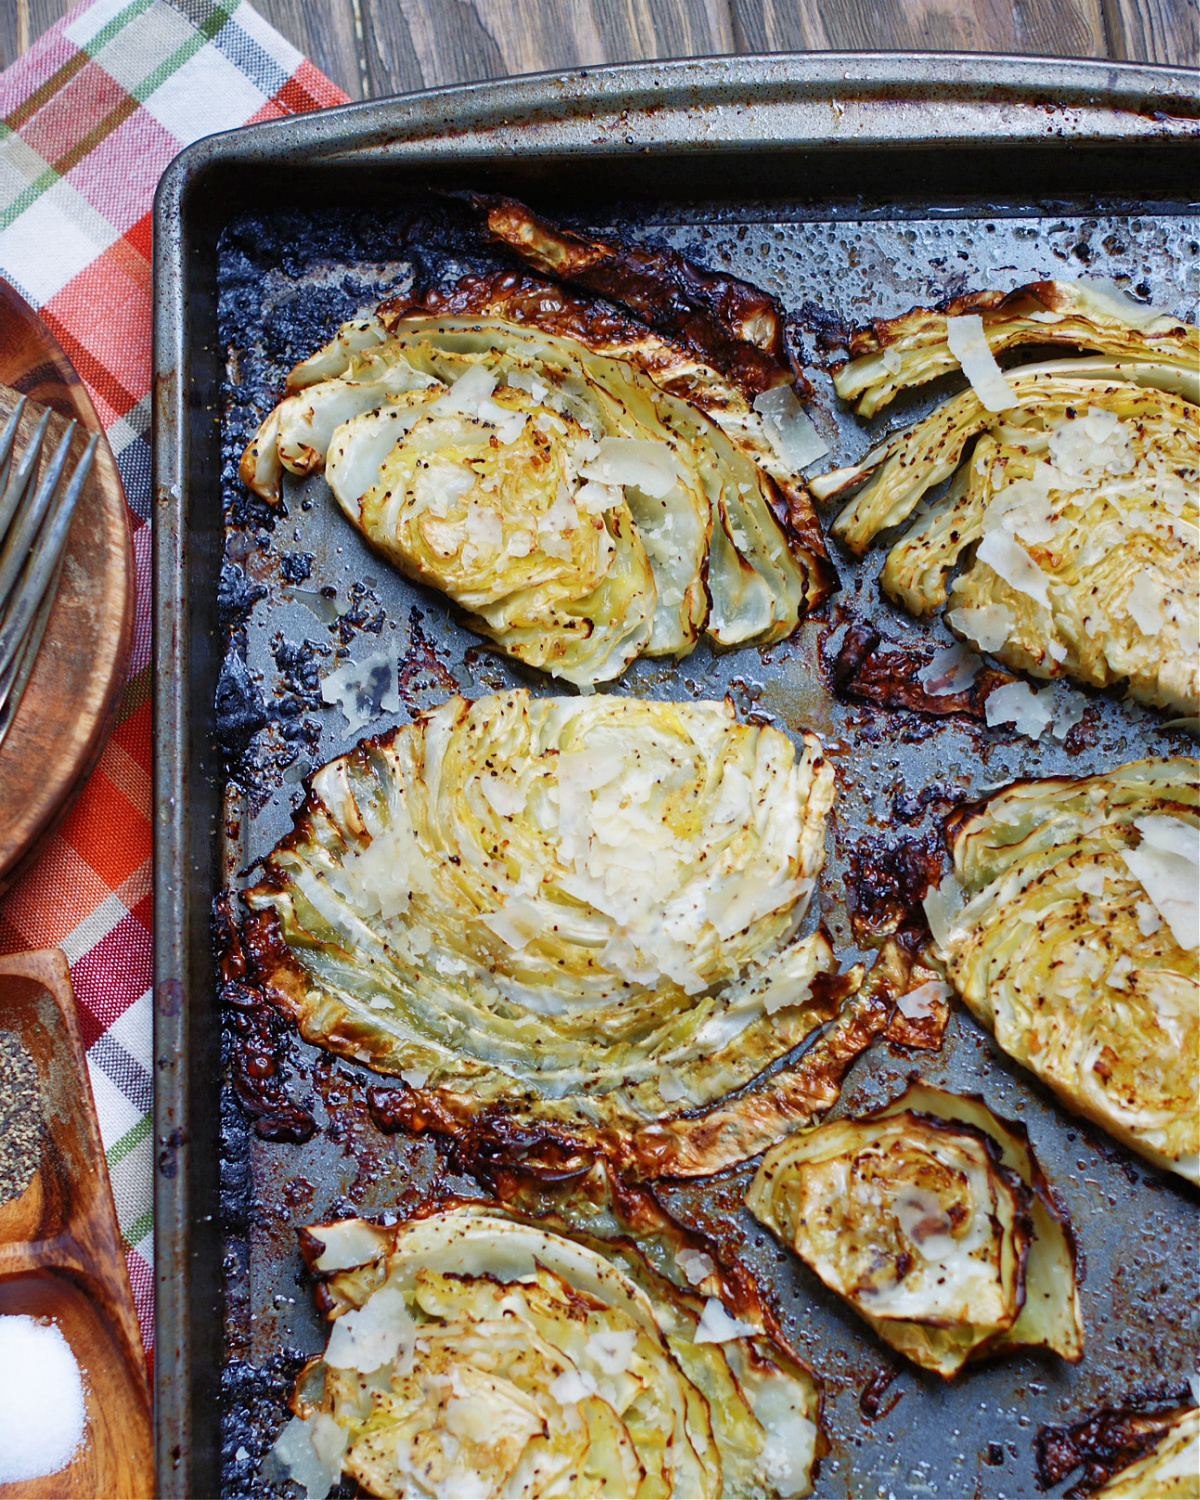 a finished pan of roasted cabbage steaks from the oven with parmesan cheese